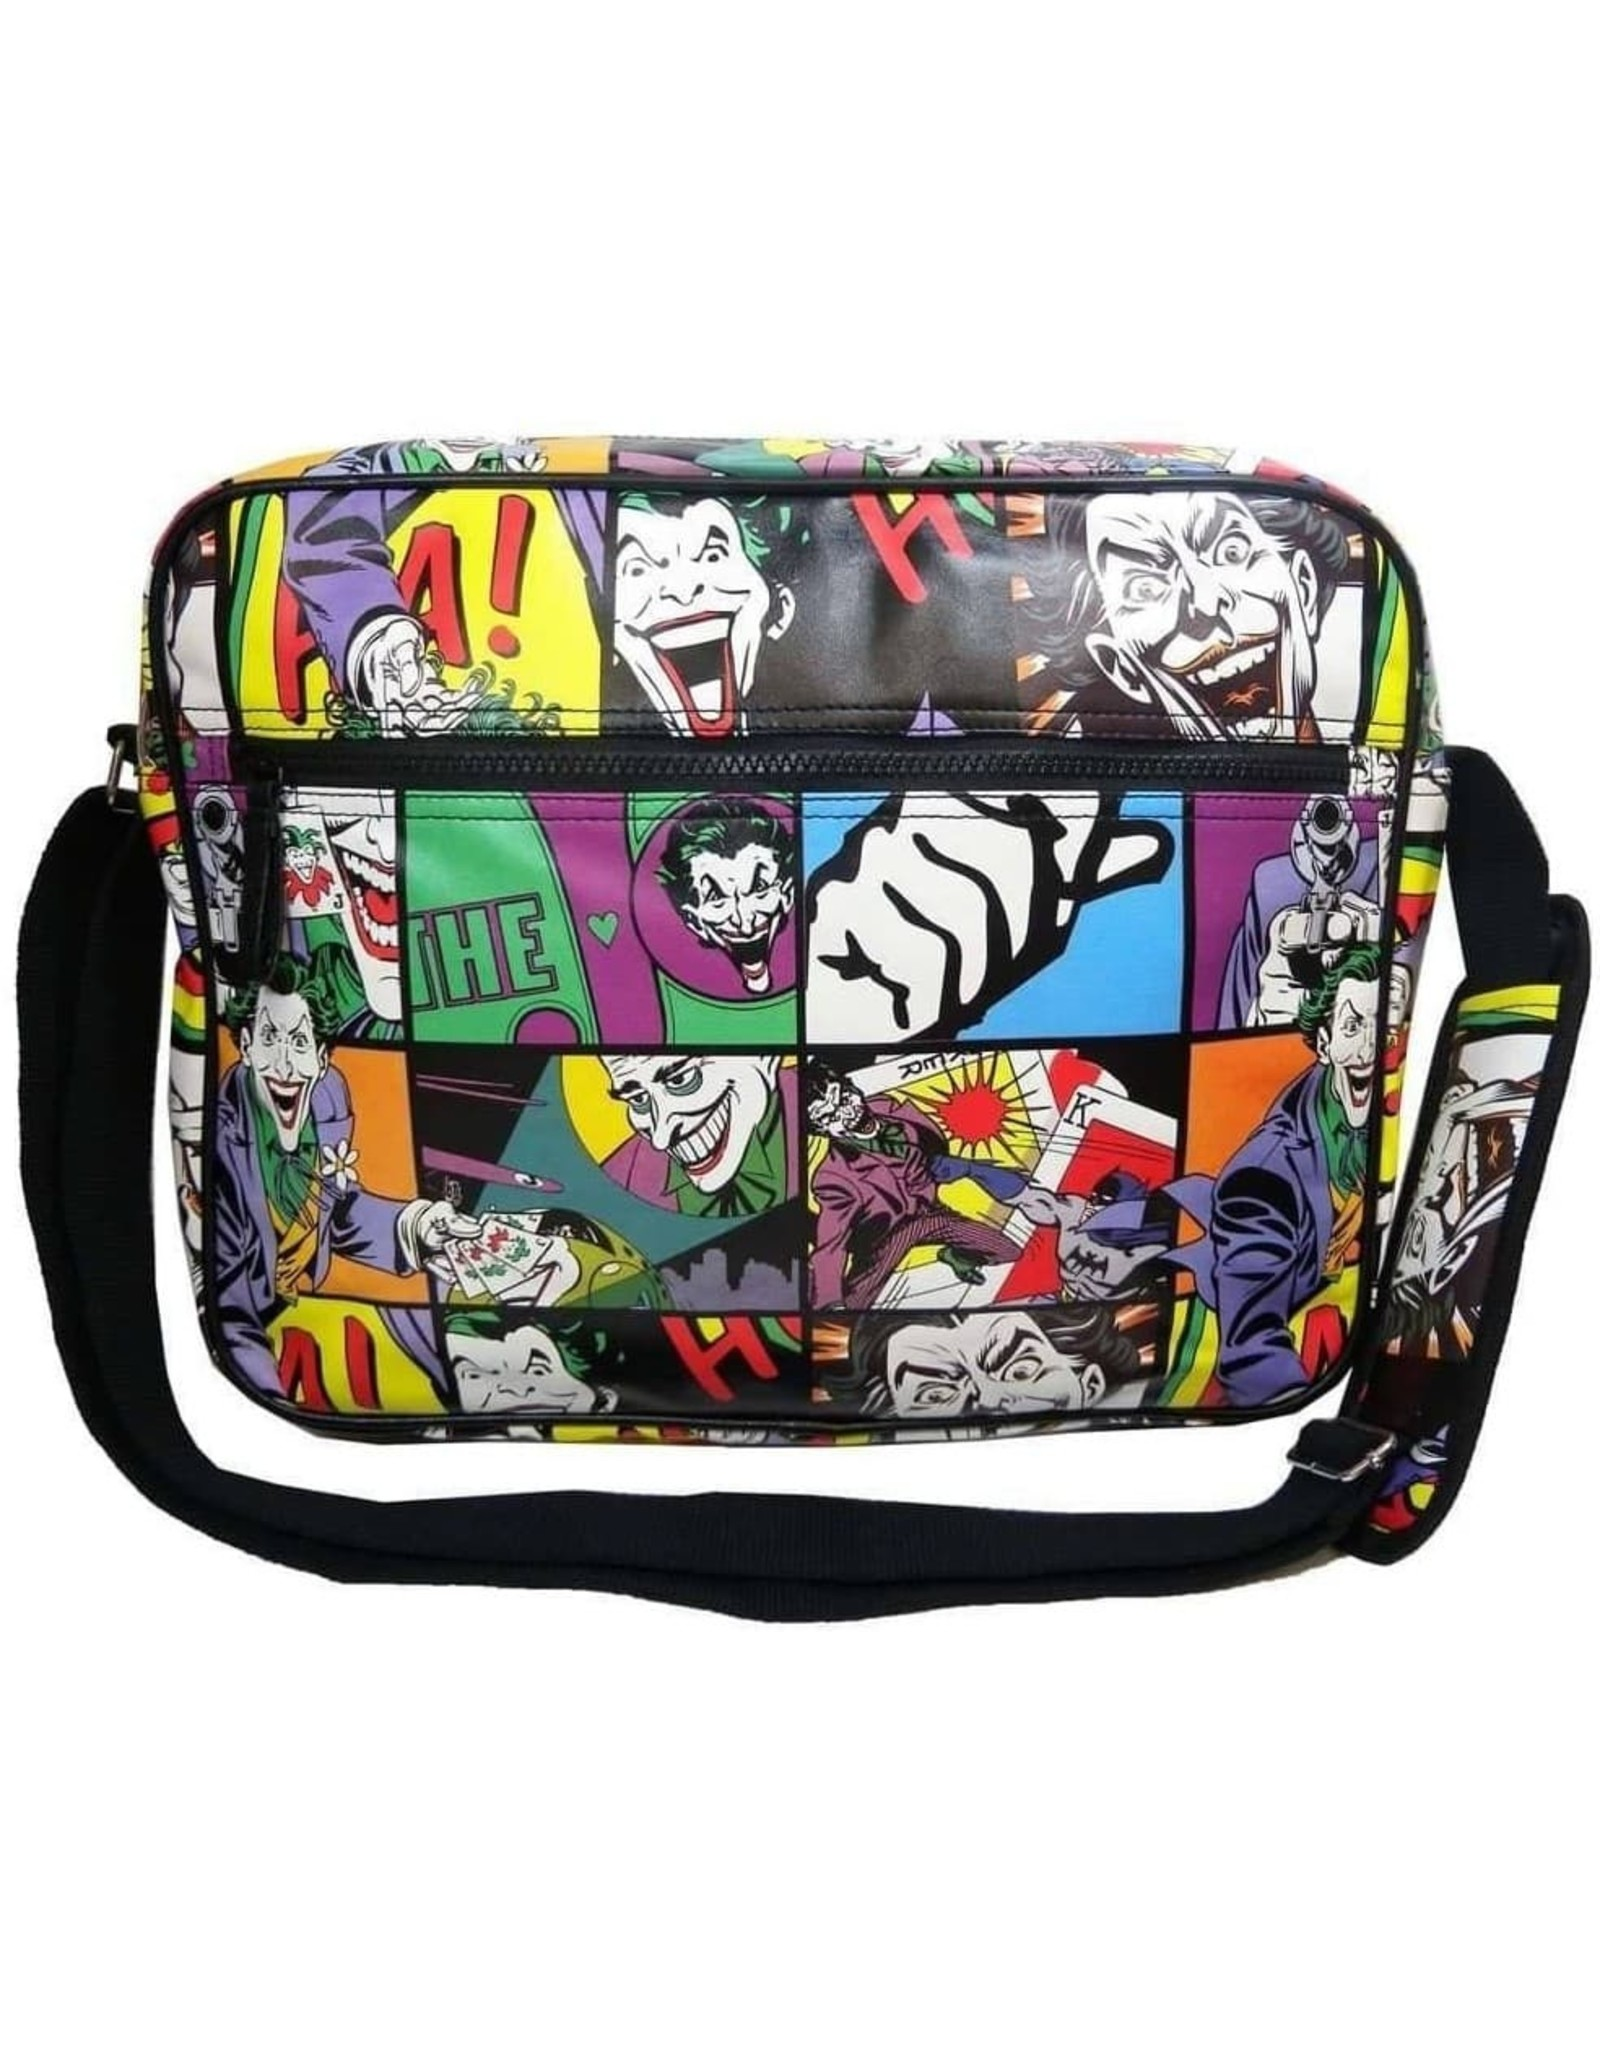 DC Comics Merchandise bags - DC Comics The Joker Messenger bag